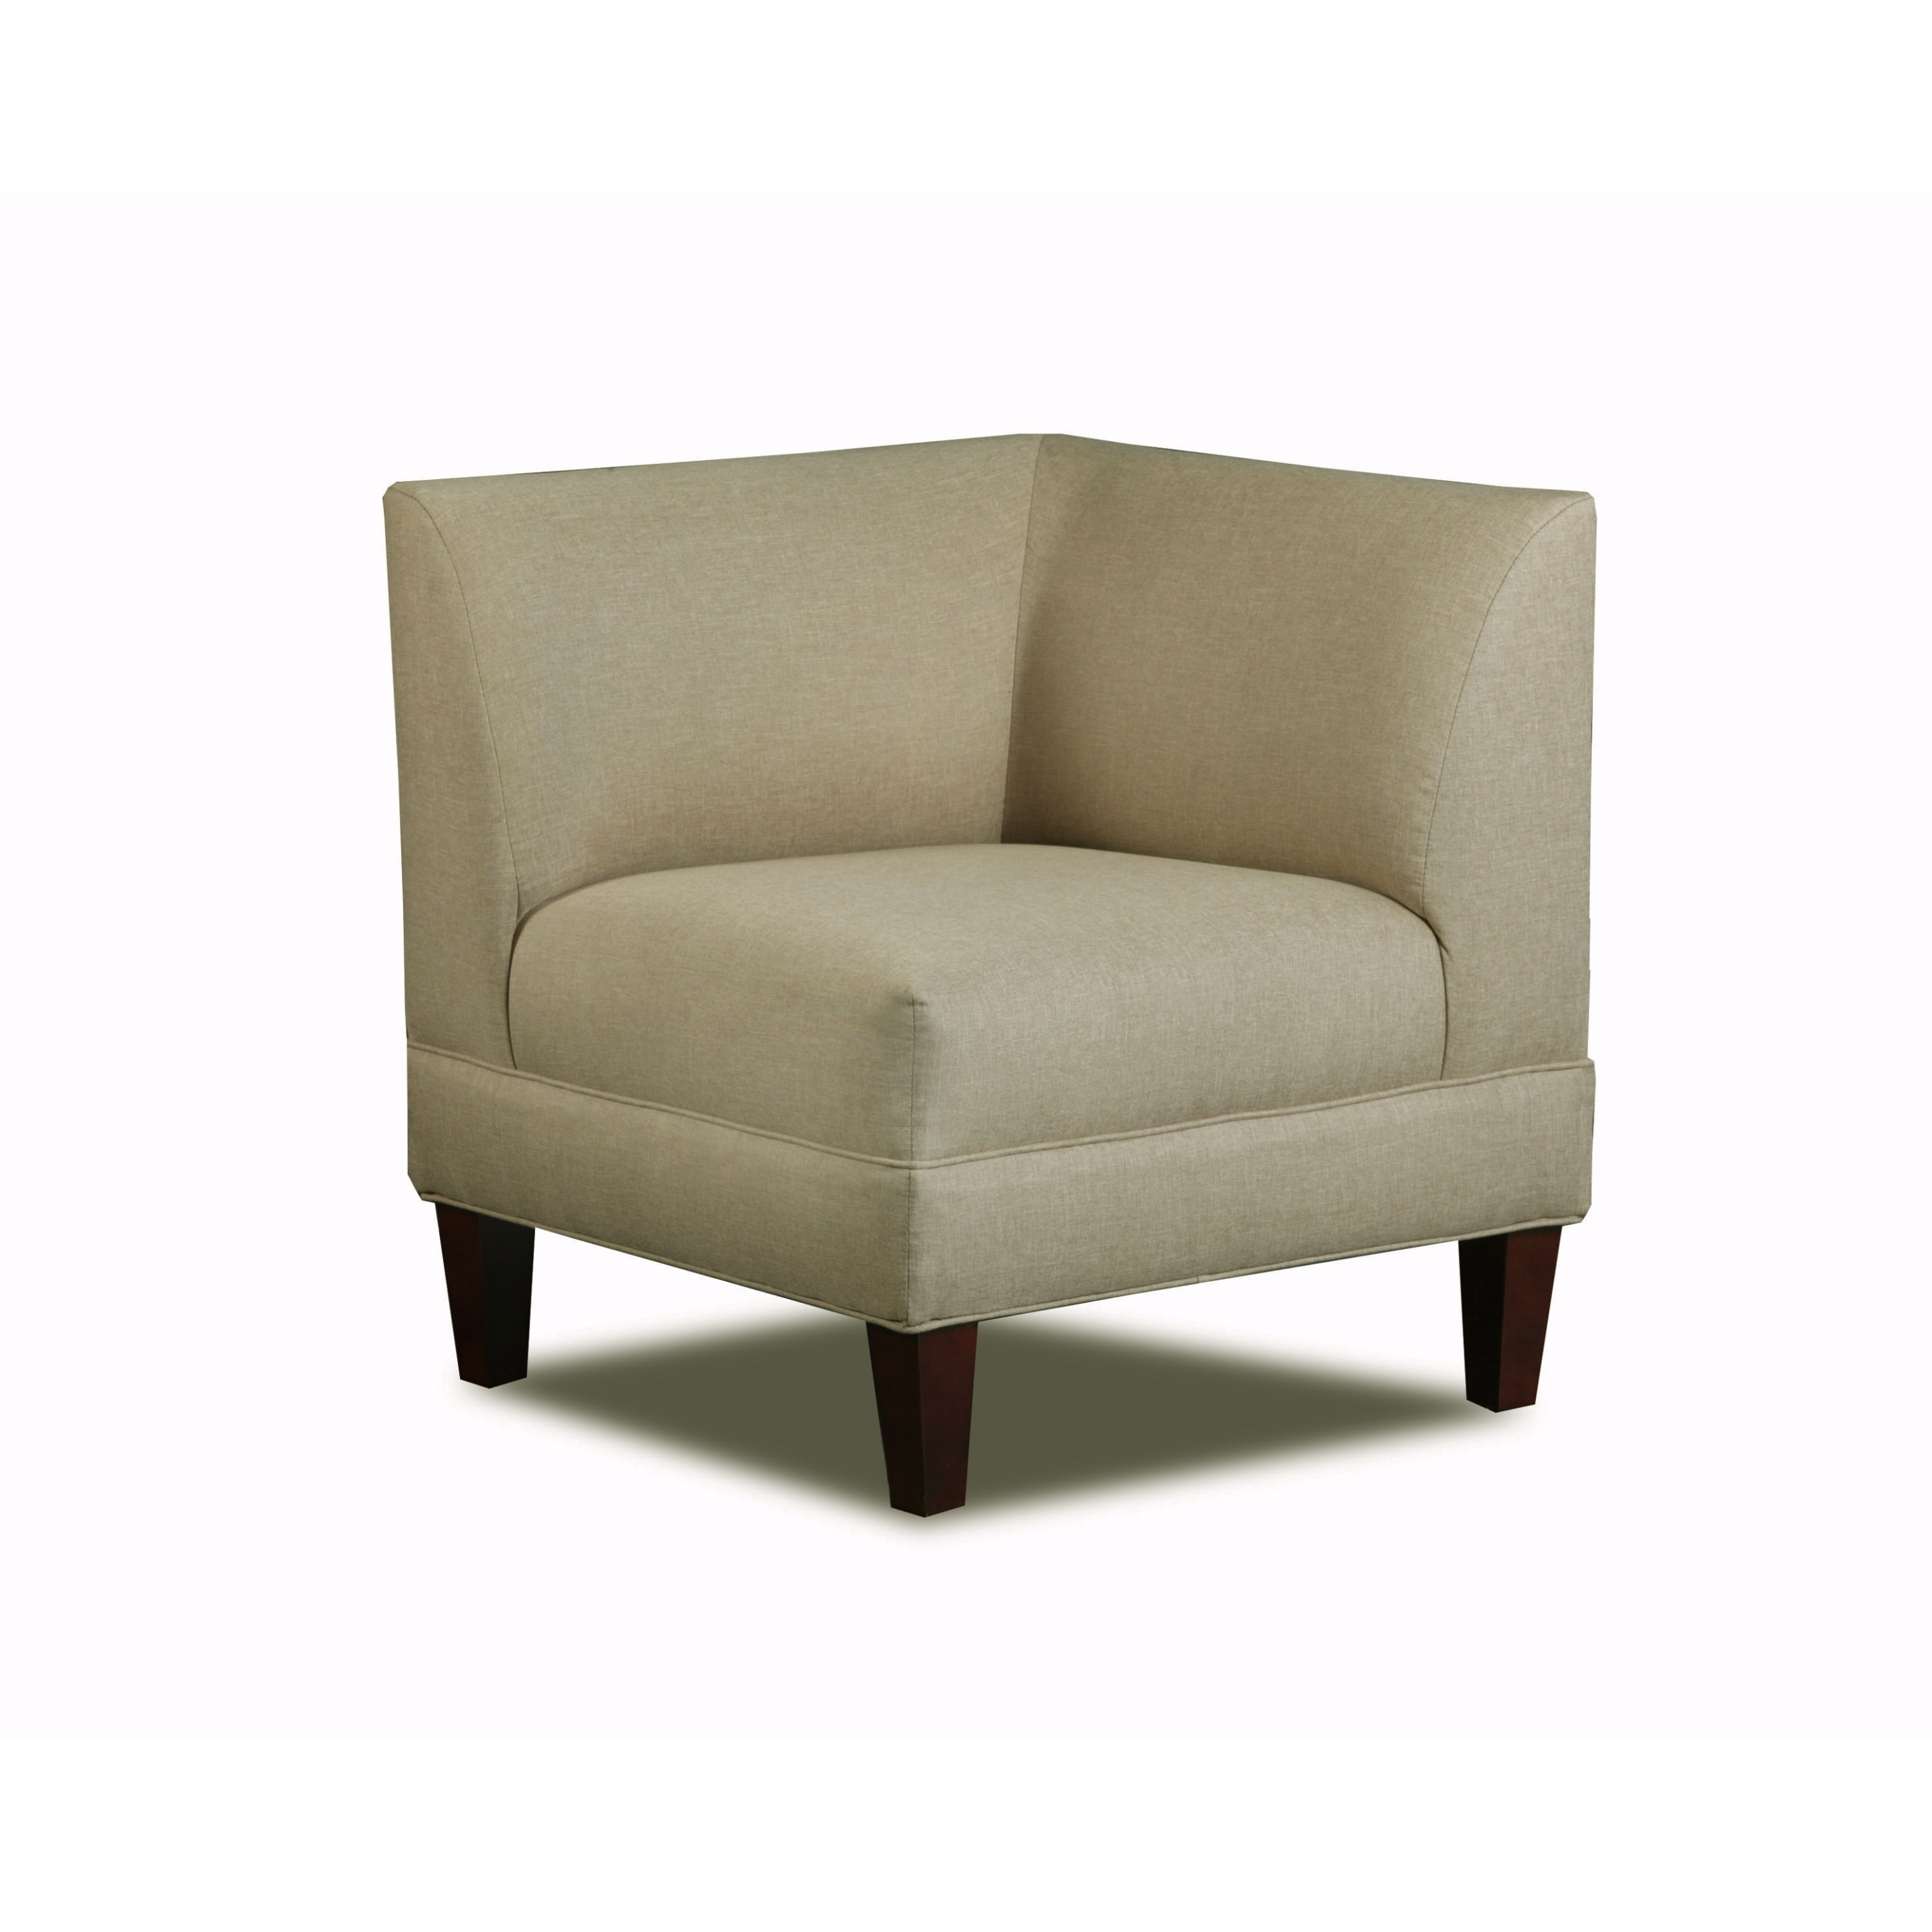 Carolina Accents Briley Sand Corner Chair by Overstock